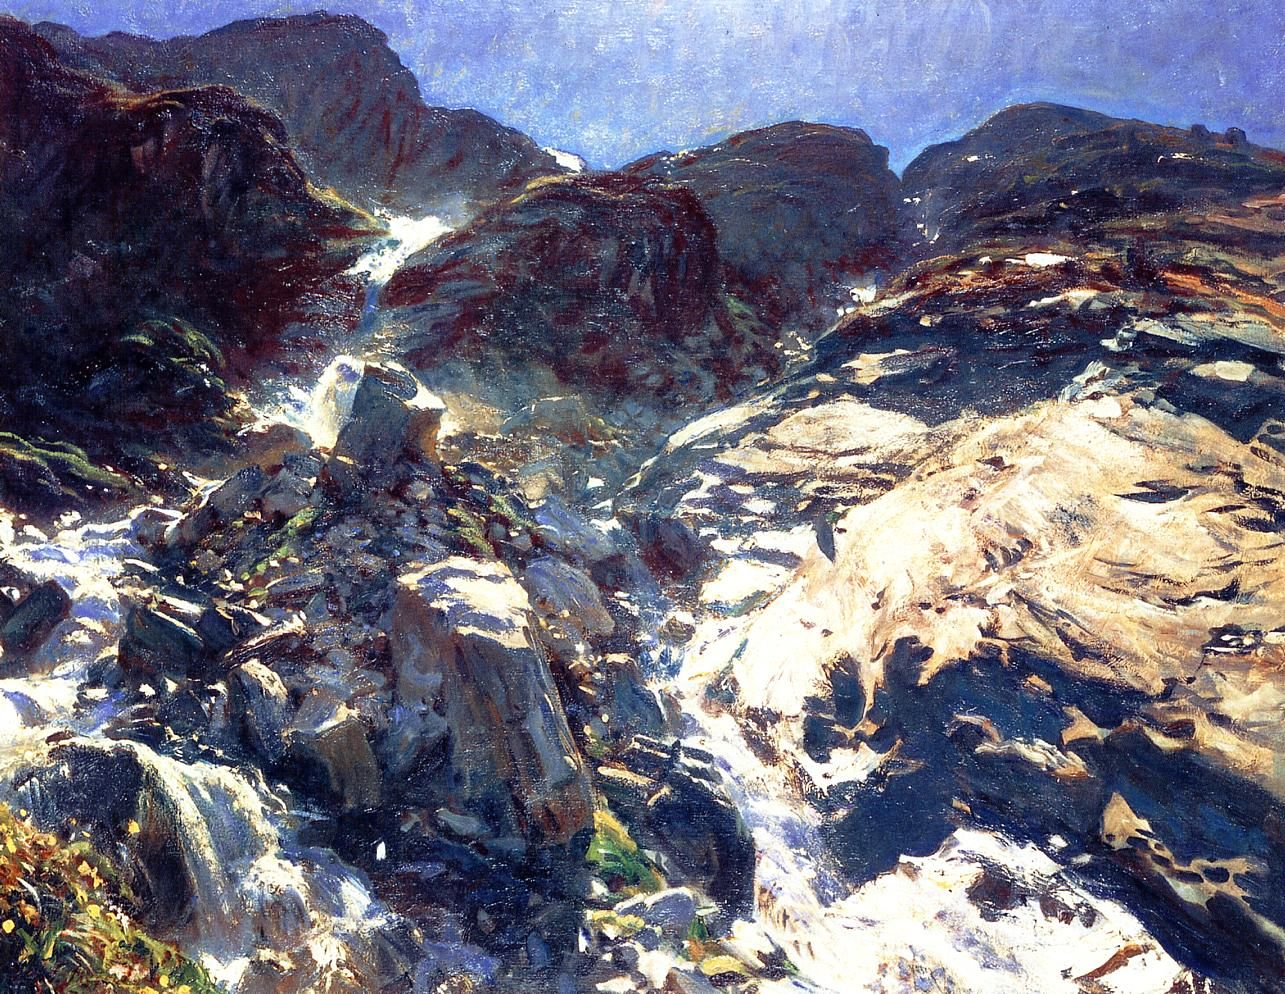 John Singer Sargent - I have seen very few of his landscapes.  But, amazing as always.